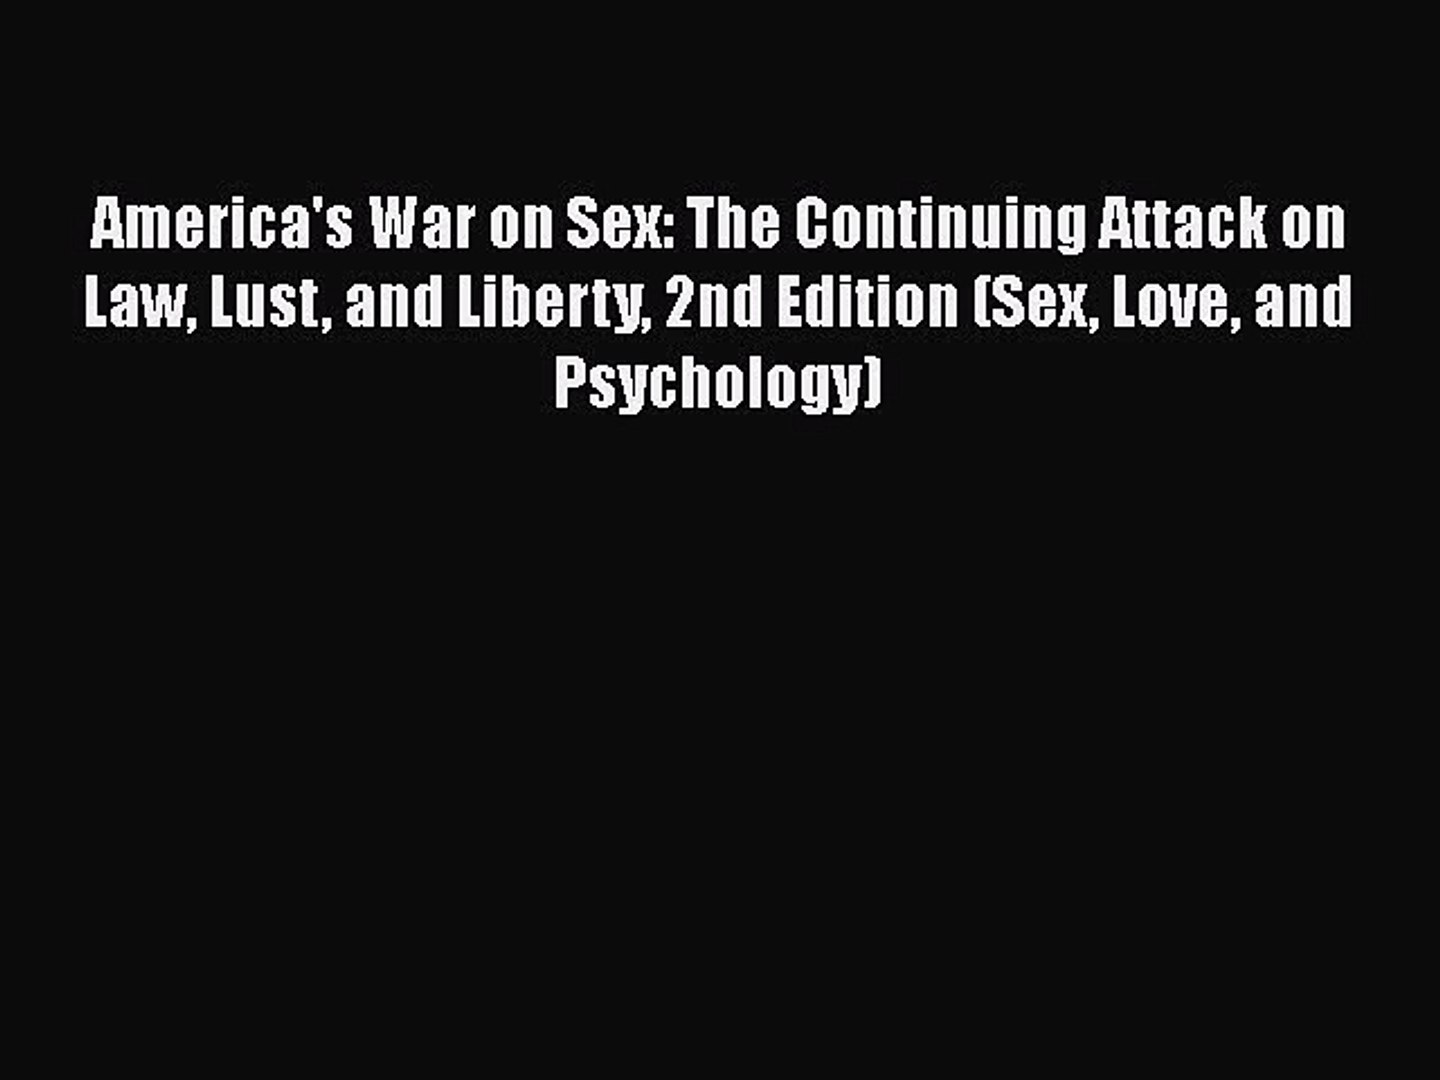 [PDF] America's War on Sex: The Continuing Attack on Law Lust and Liberty 2nd Edition (Sex